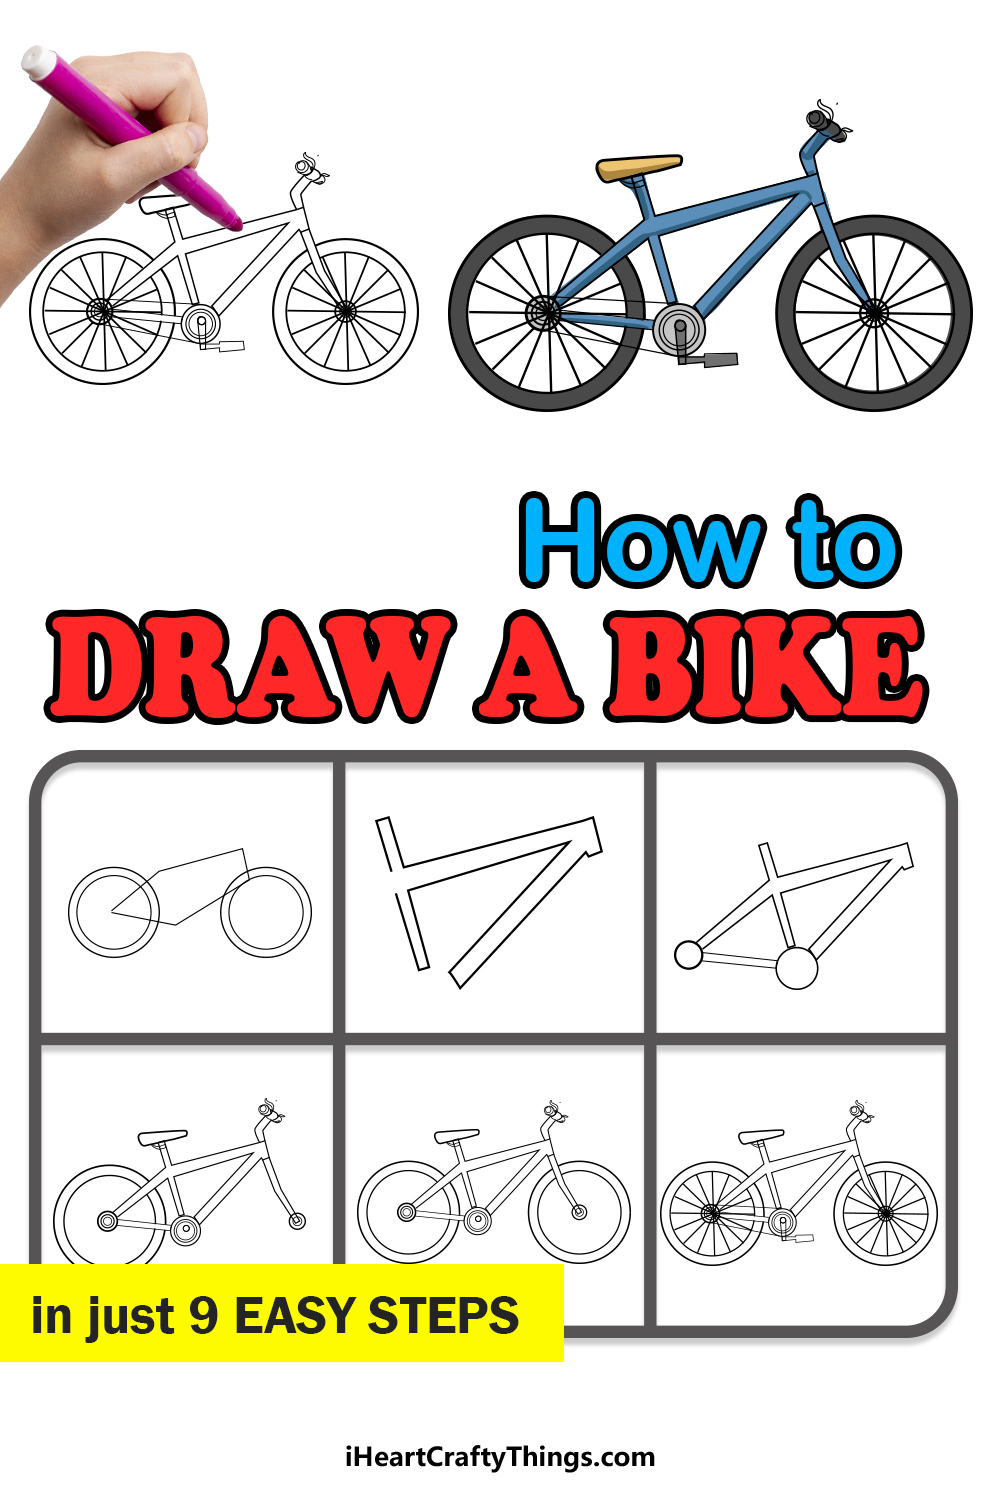 how to draw a bike in 9 easy steps